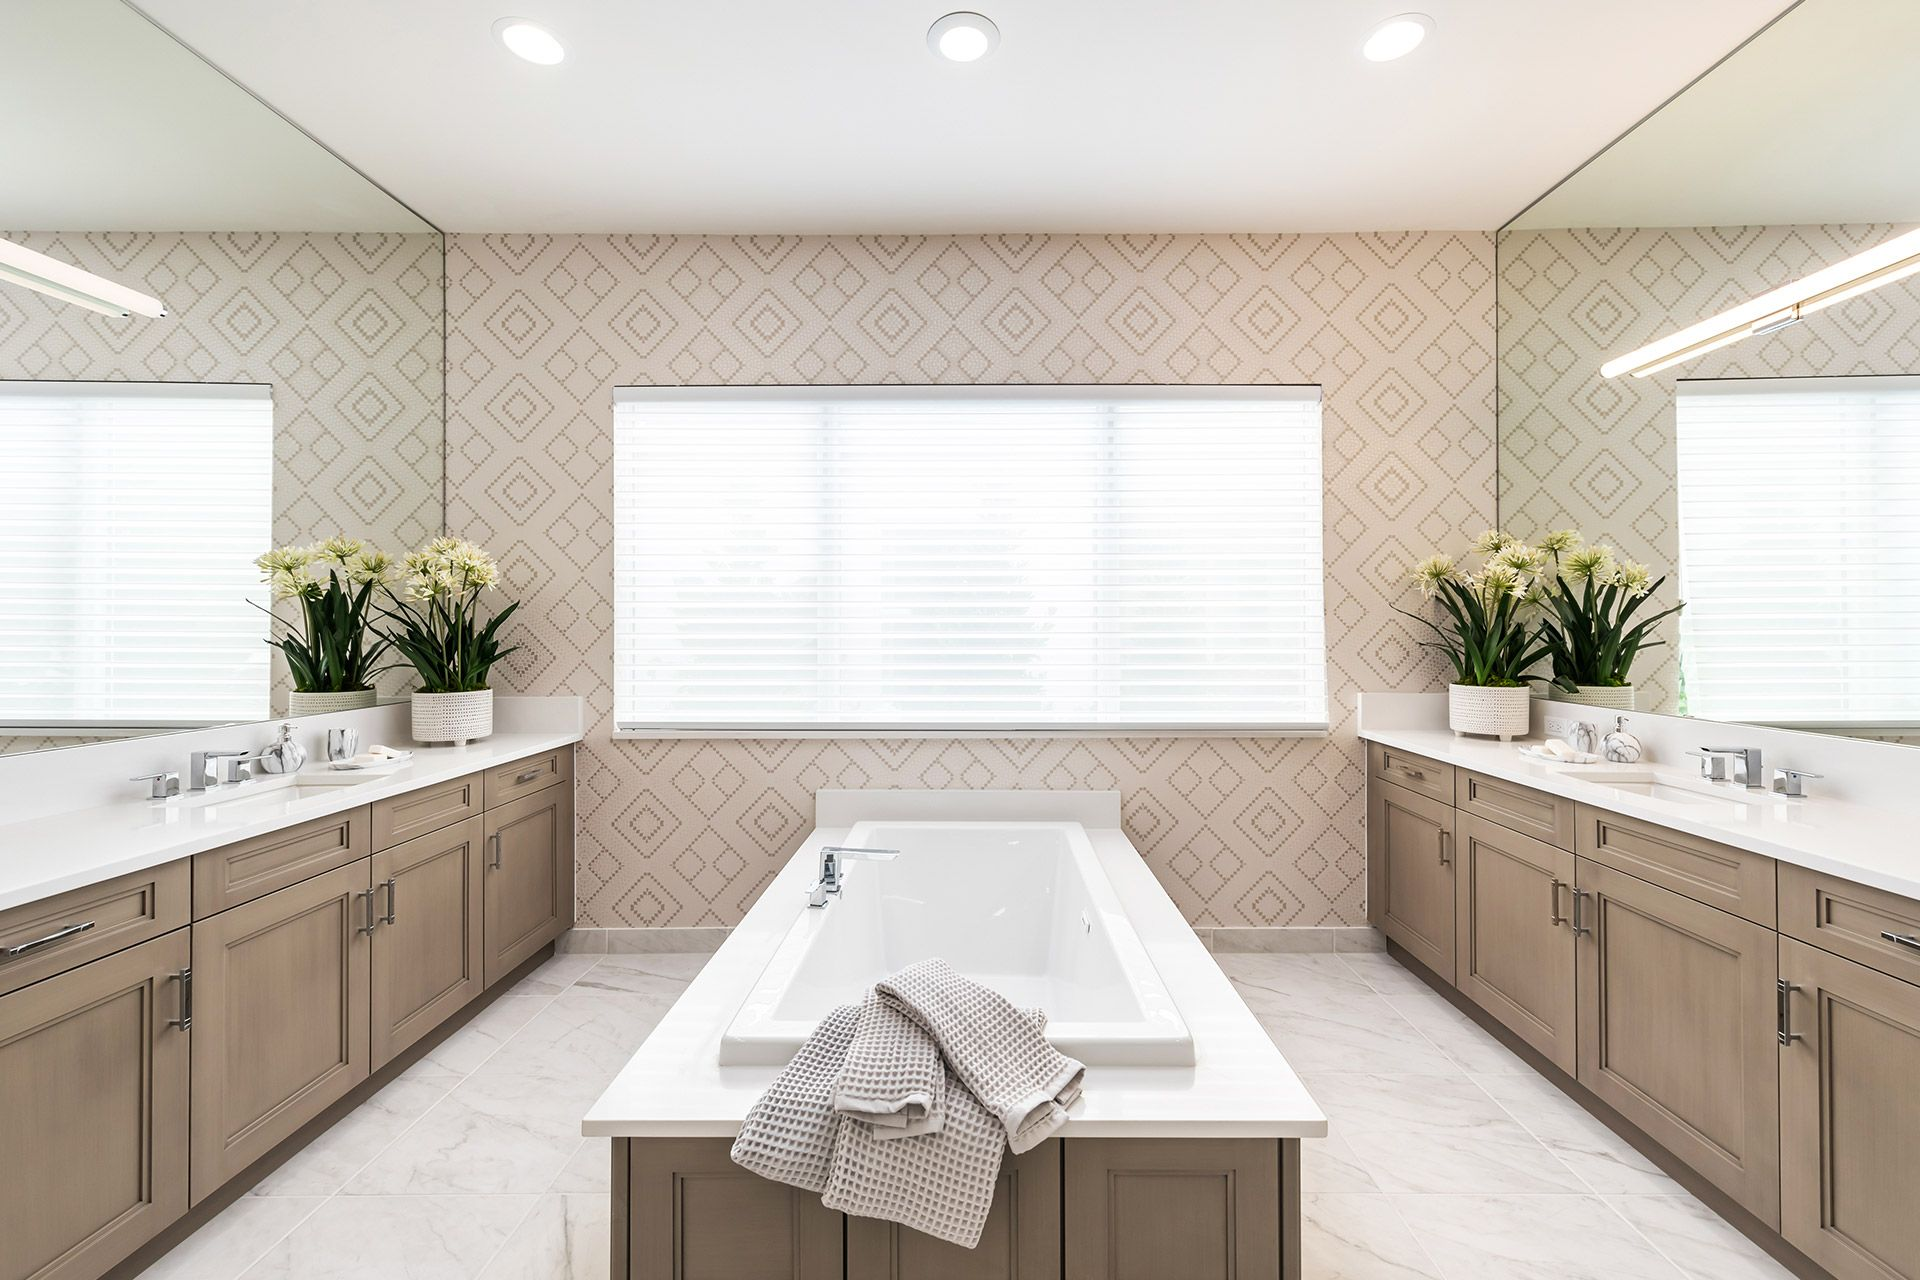 Bathroom featured in the Sanddollar By GL Homes in Naples, FL